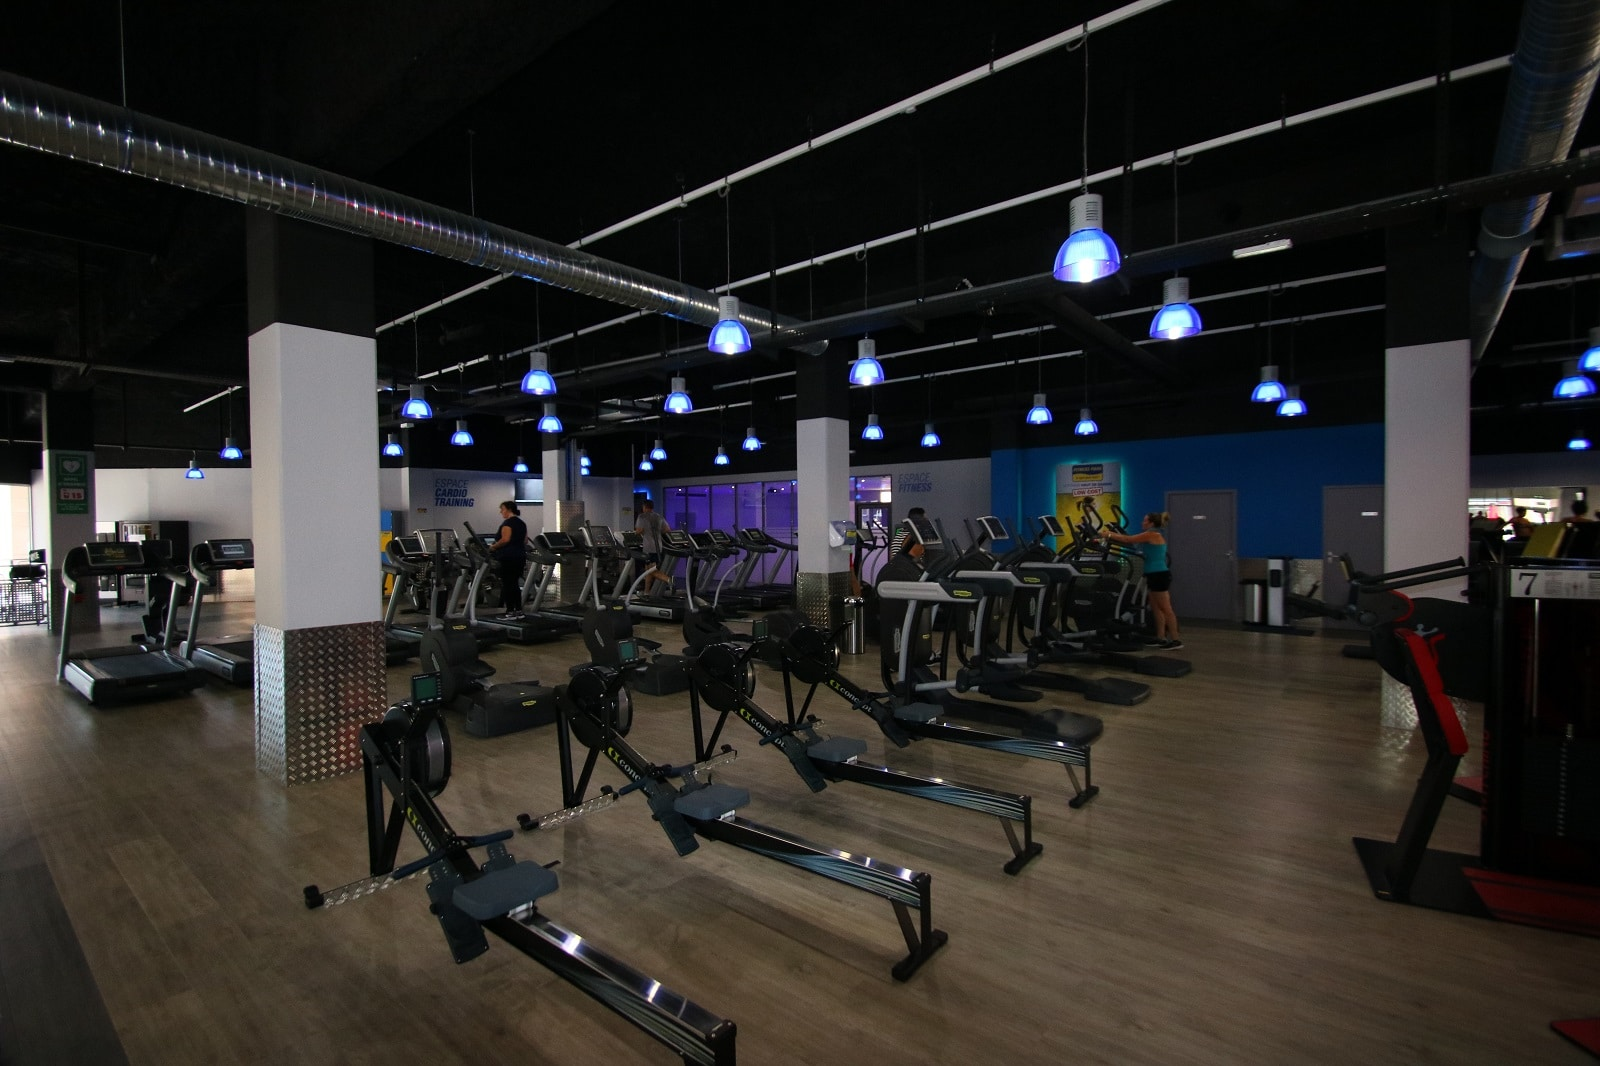 fitness park espace cardio toulon perte de poids endurance. Black Bedroom Furniture Sets. Home Design Ideas